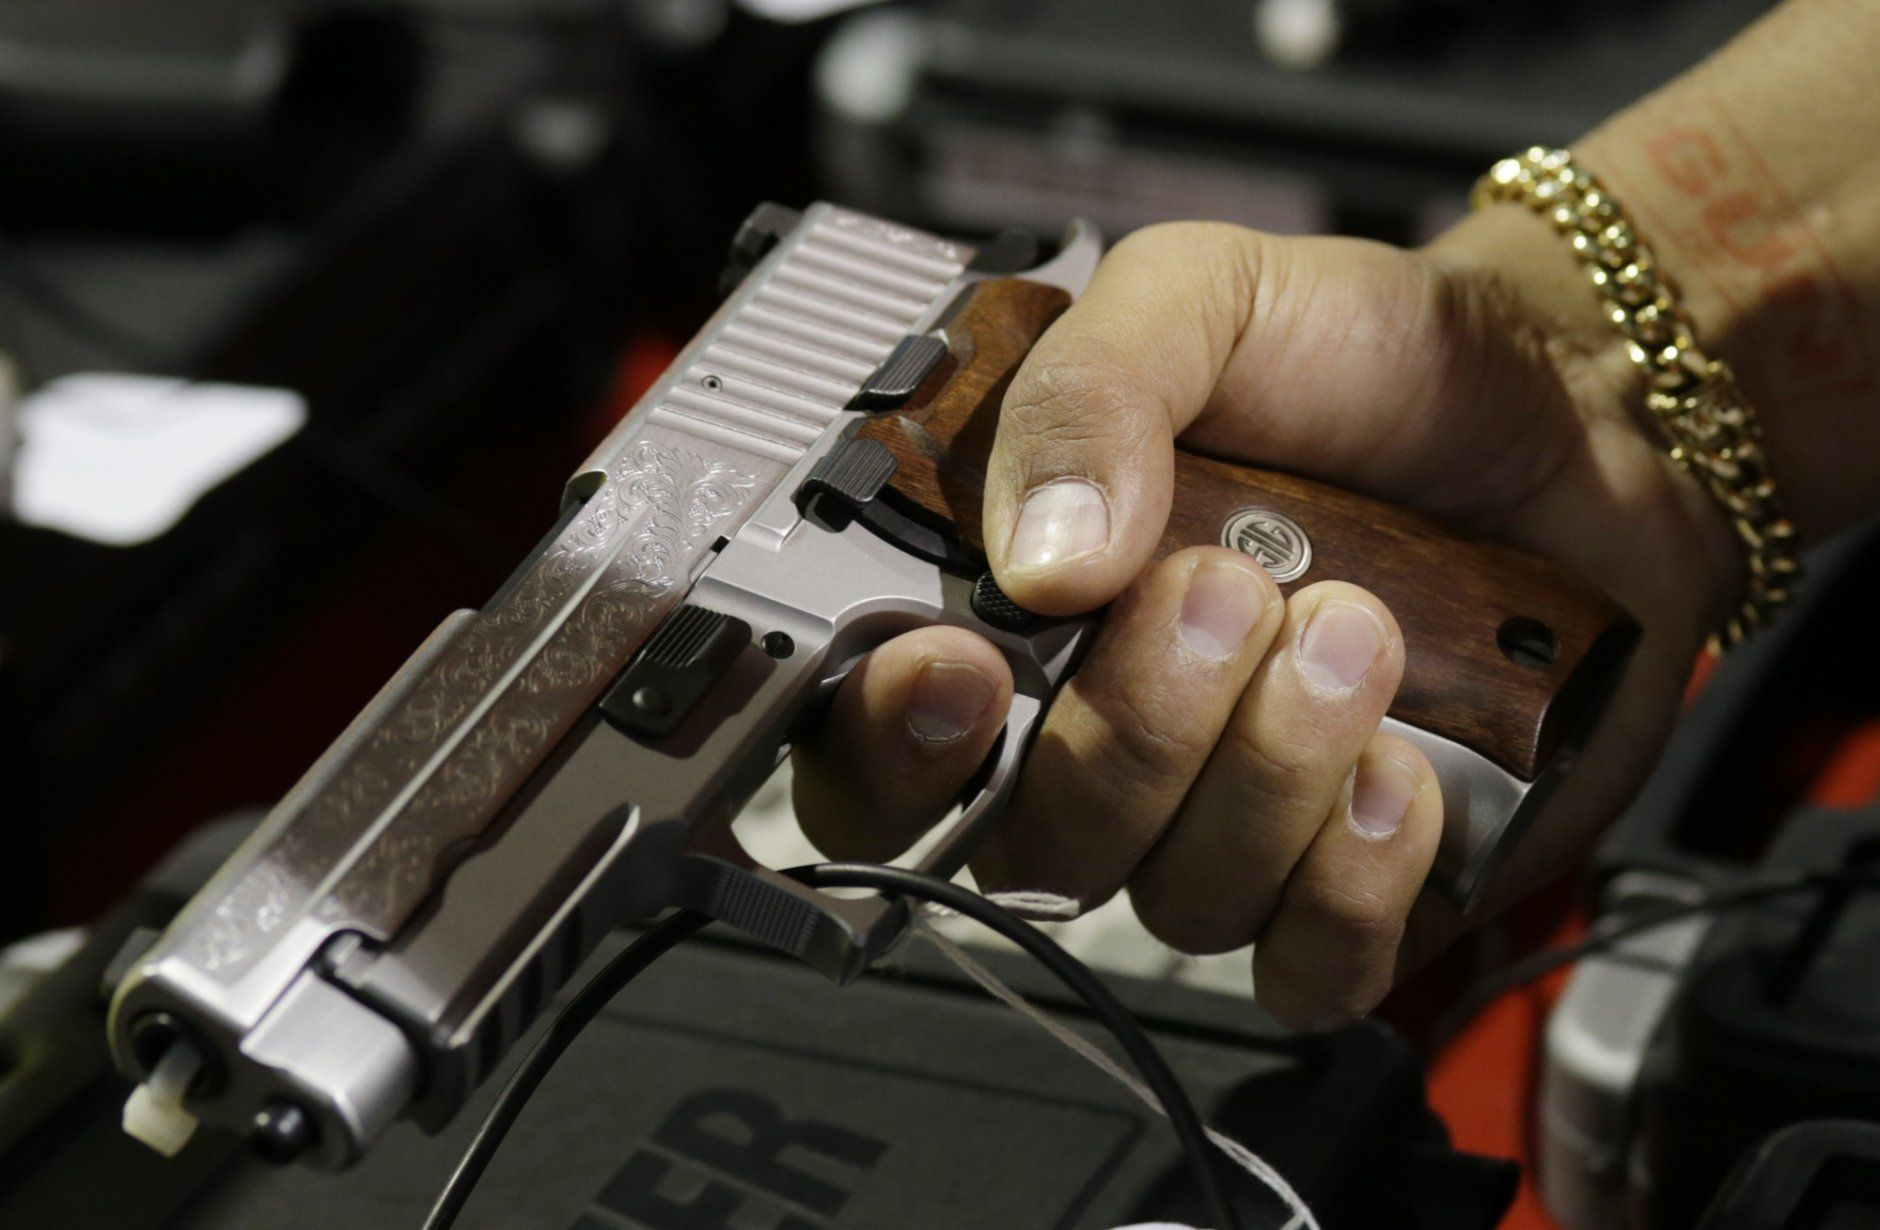 FILE - In this Jan. 9, 2016, file photo, a customer looks at a SIG Sauer hand gun at a gun show held by Florida Gun Shows in Miami.  The vast majority of mass shooters have acquired their firearms legally with nothing in their background that would have prohibited them from possessing a gun. But there have been examples of lapses in the background check system that allowed guns to end up in the wrong hands. Very few states also have a mechanism to seize firearms from someone who is not legally allowed to possess one. (AP Photo/Lynne Sladky, File)